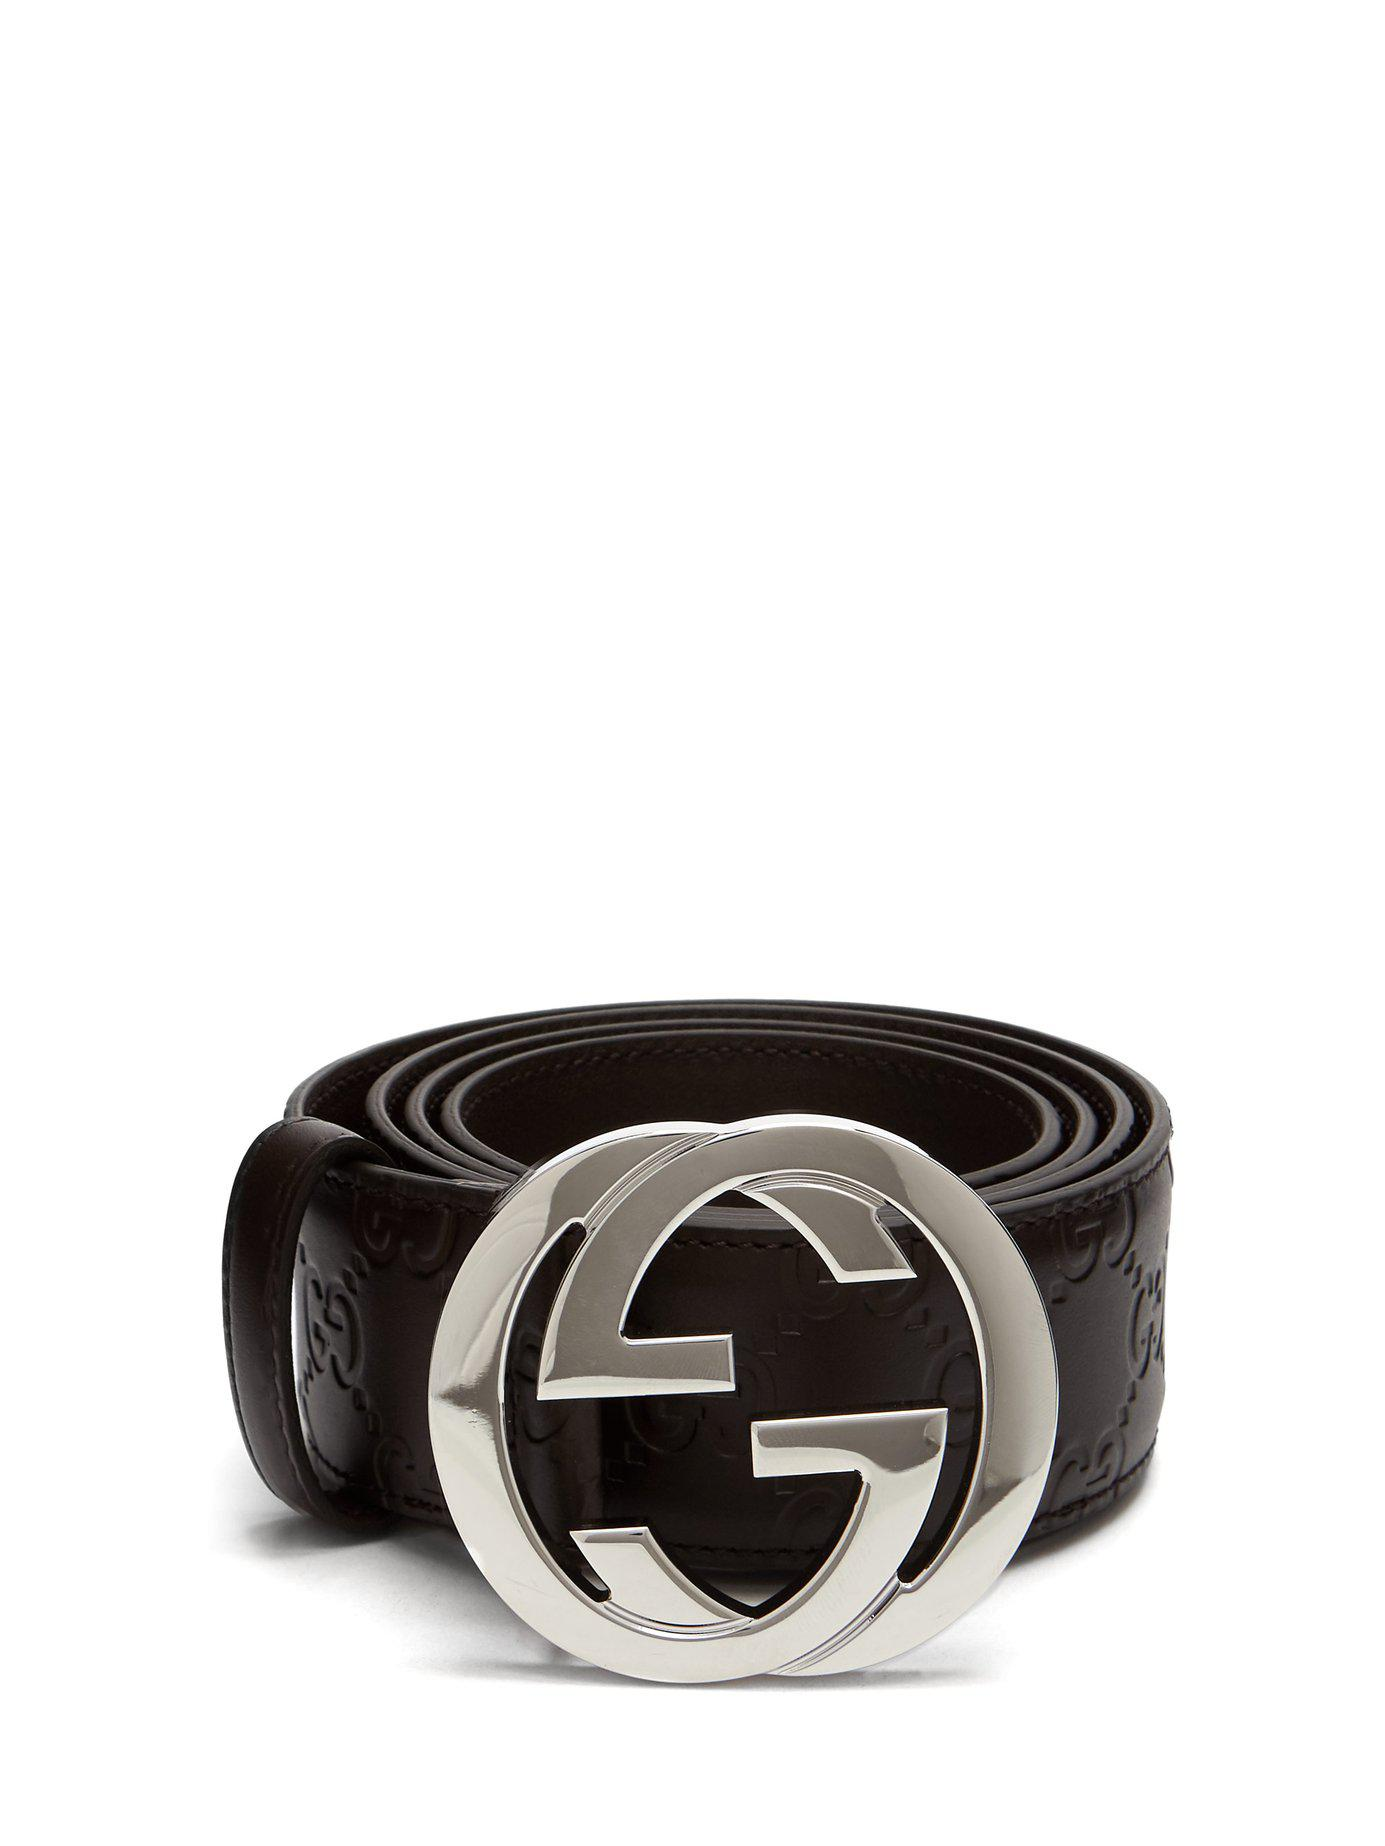 051d39b900344 Gucci Gg Textured Leather Belt in Brown for Men - Lyst